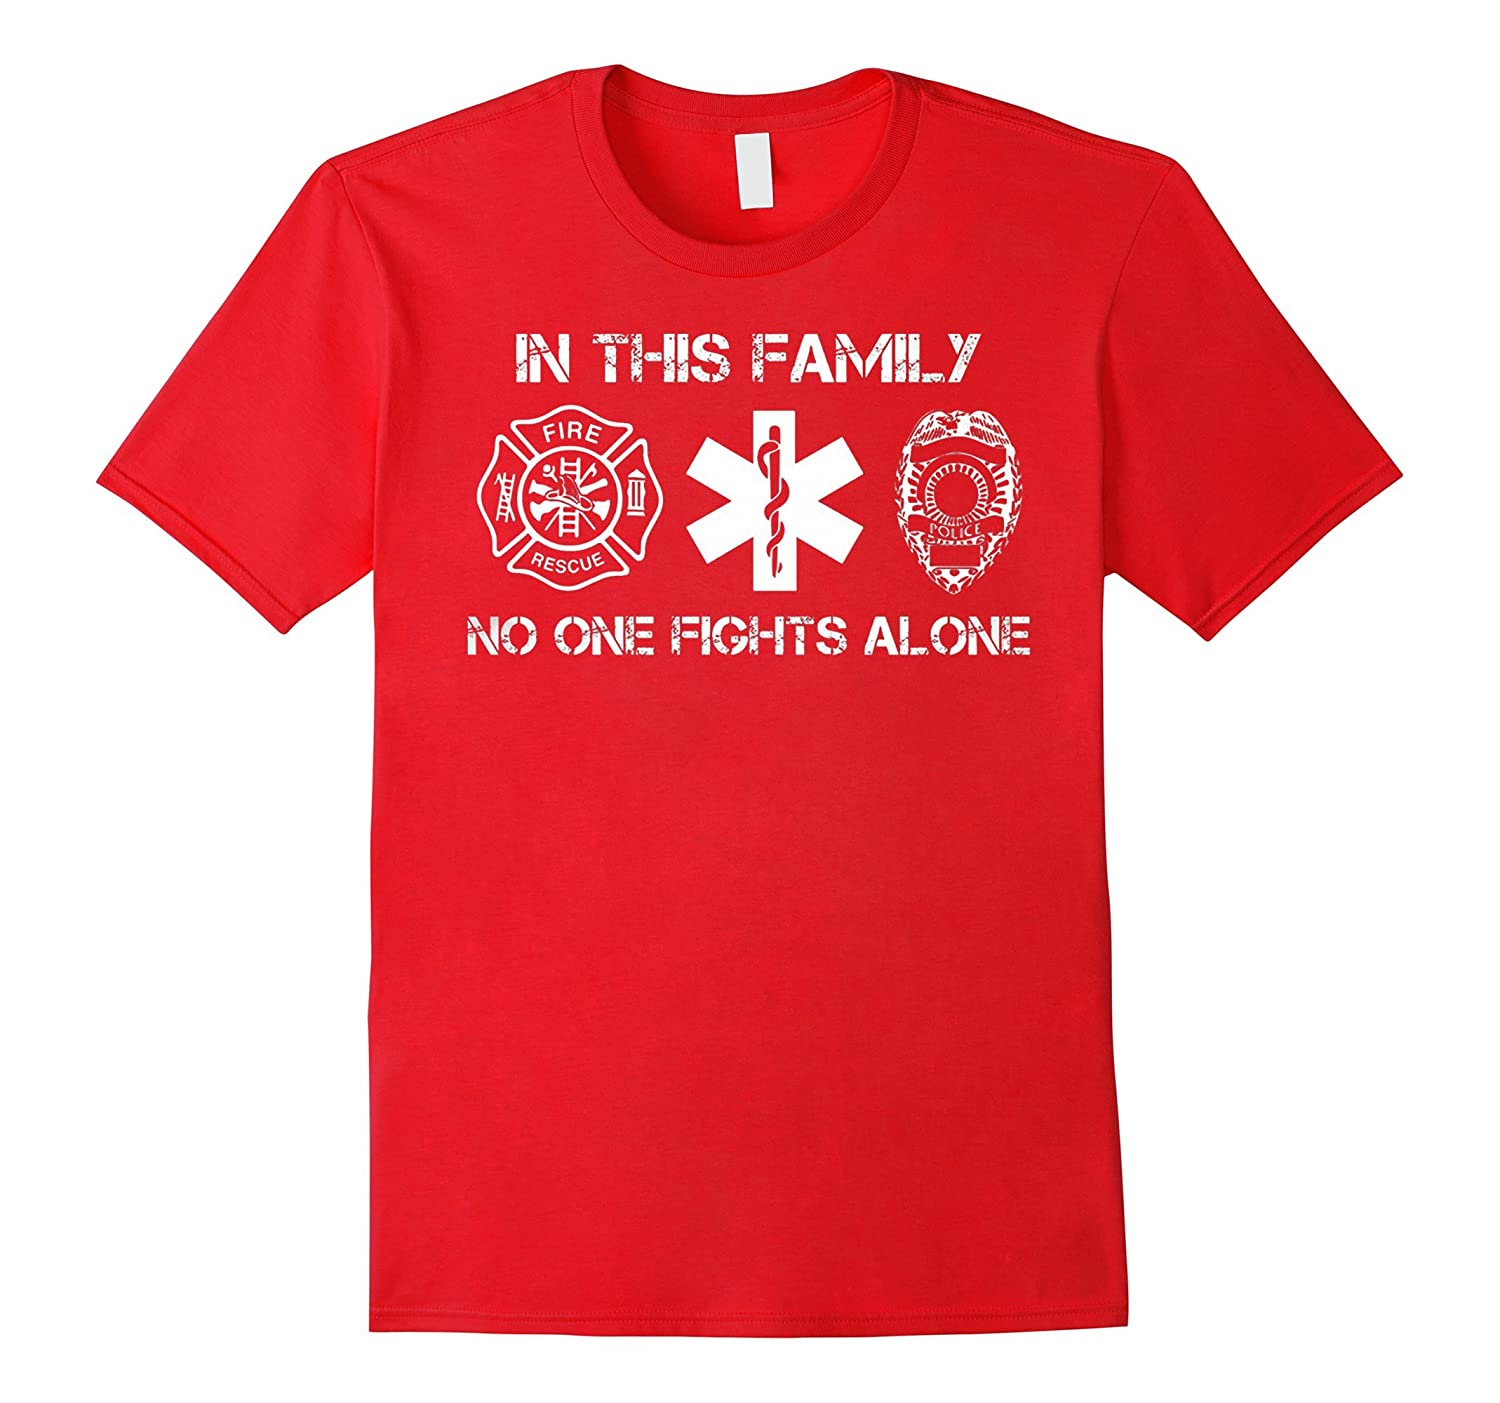 FireFighter Shirt In This Family No One Fights Alone T Shirt-Vaci